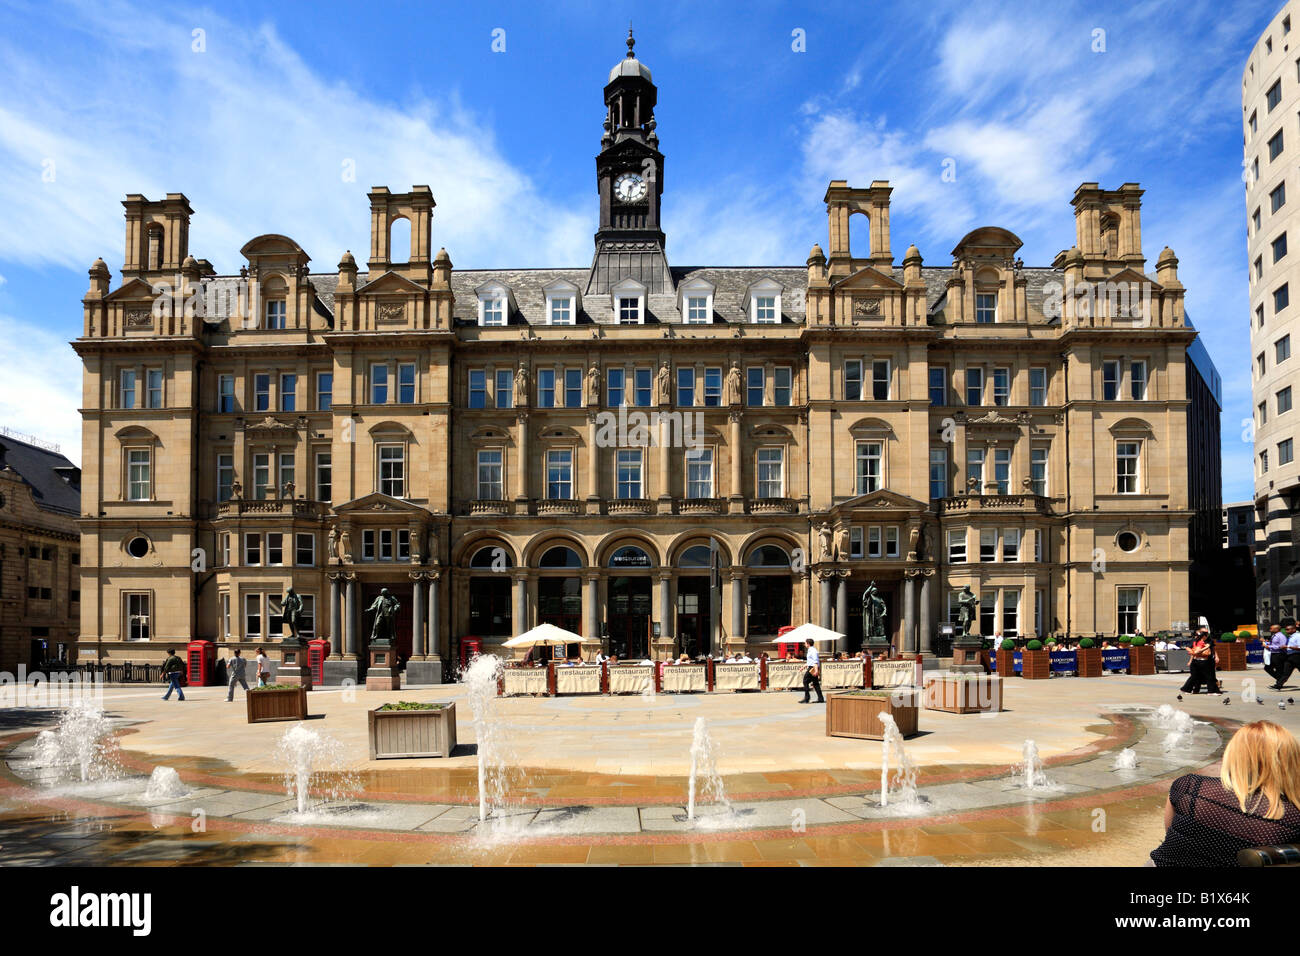 The Old Post Office, City Square, Leeds, West Yorkshire, England, UK. Stock Photo